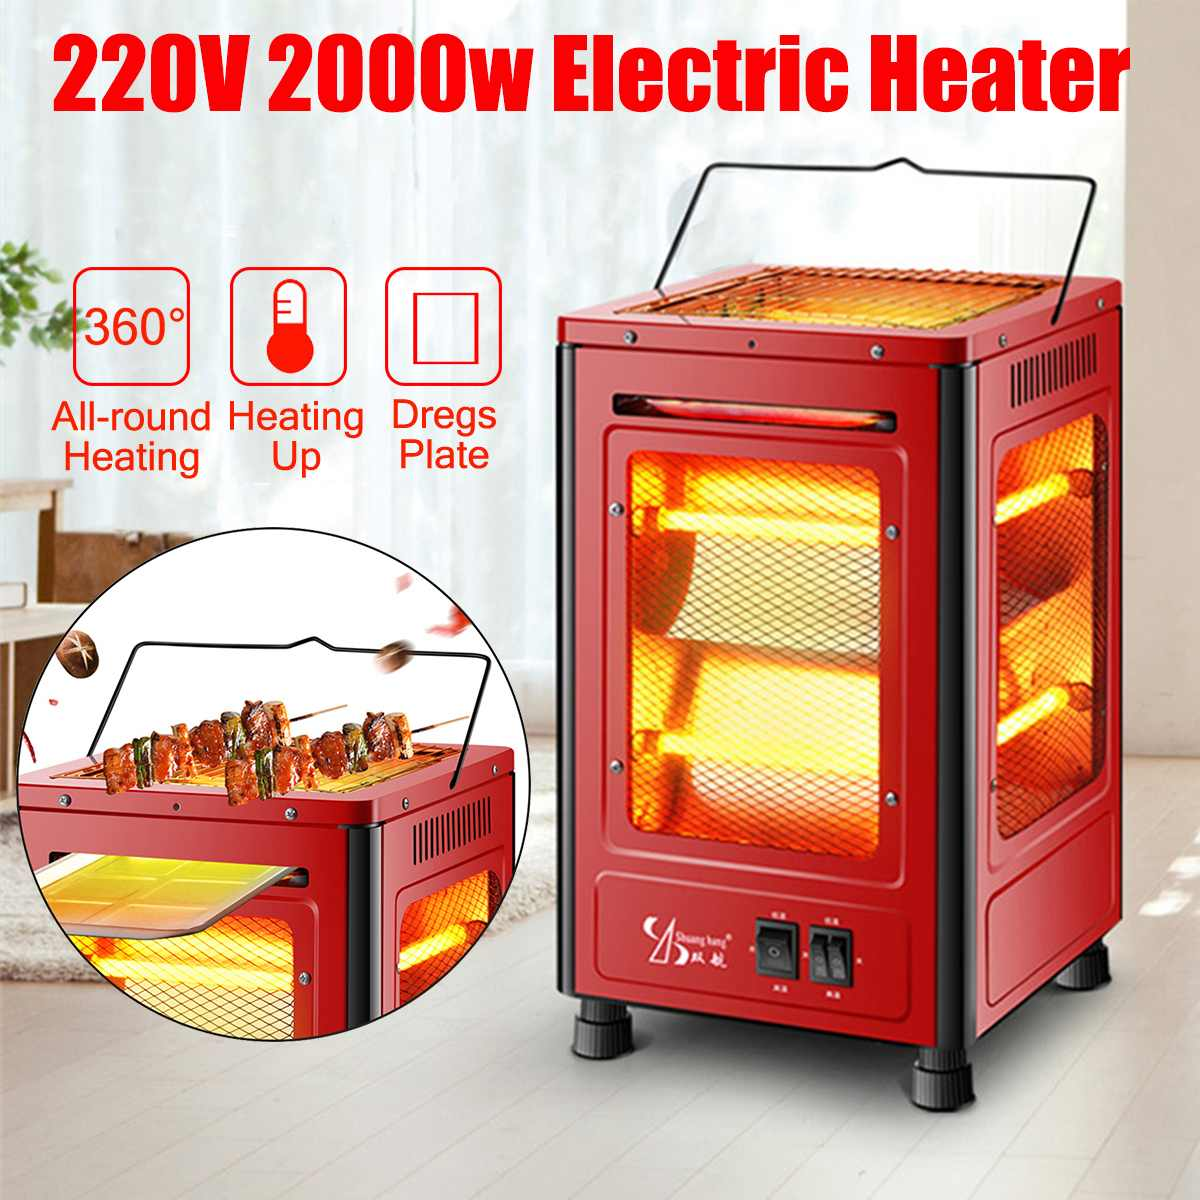 200V 2000W Home Heater Table Portable Electric Heat Blower Indoor Winter Electric Heater Room Heating200V 2000W Home Heater Table Portable Electric Heat Blower Indoor Winter Electric Heater Room Heating